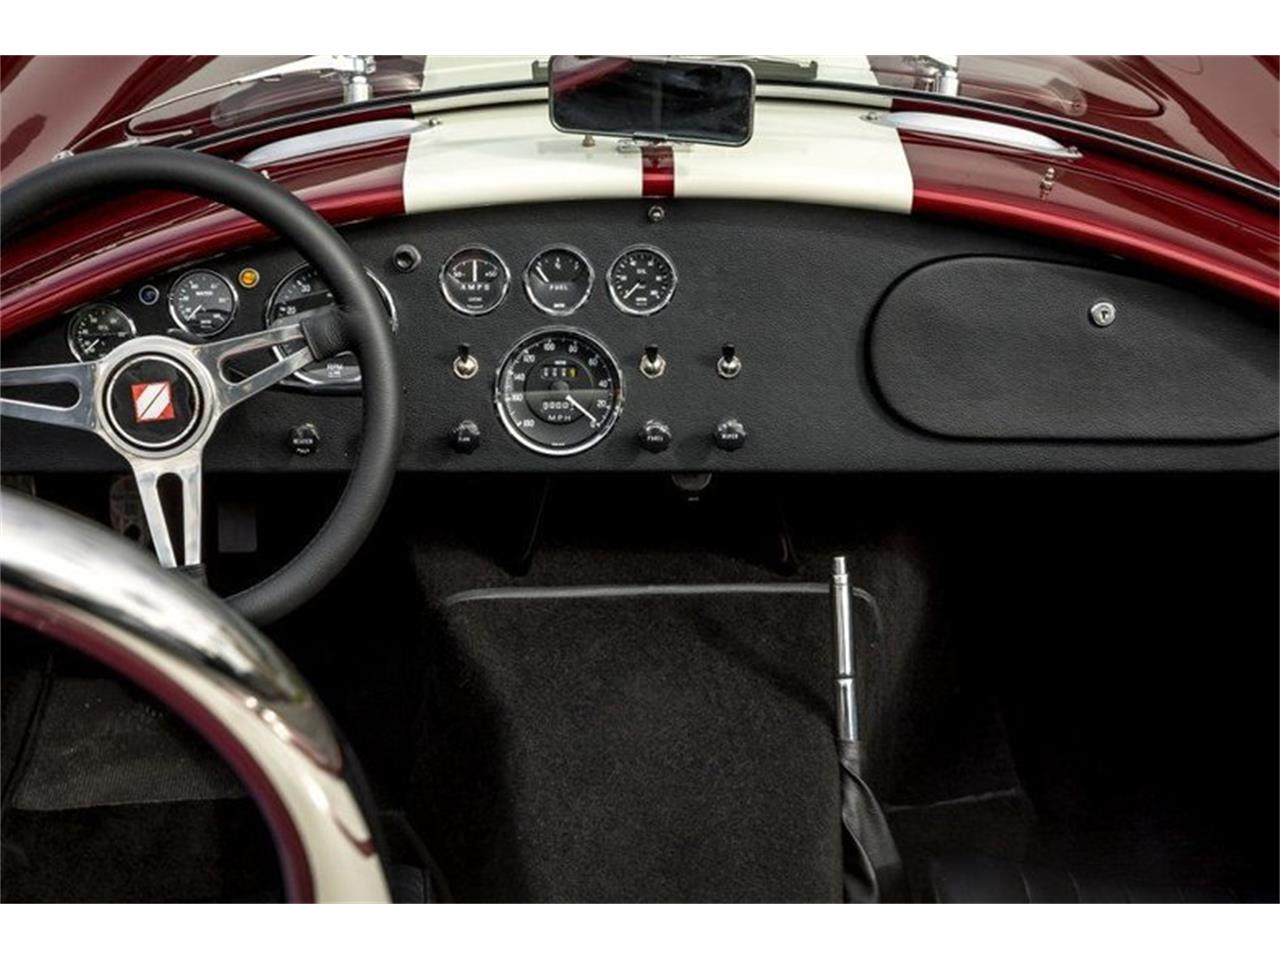 1900 Superformance MKIII (CC-1258325) for sale in Irvine, California